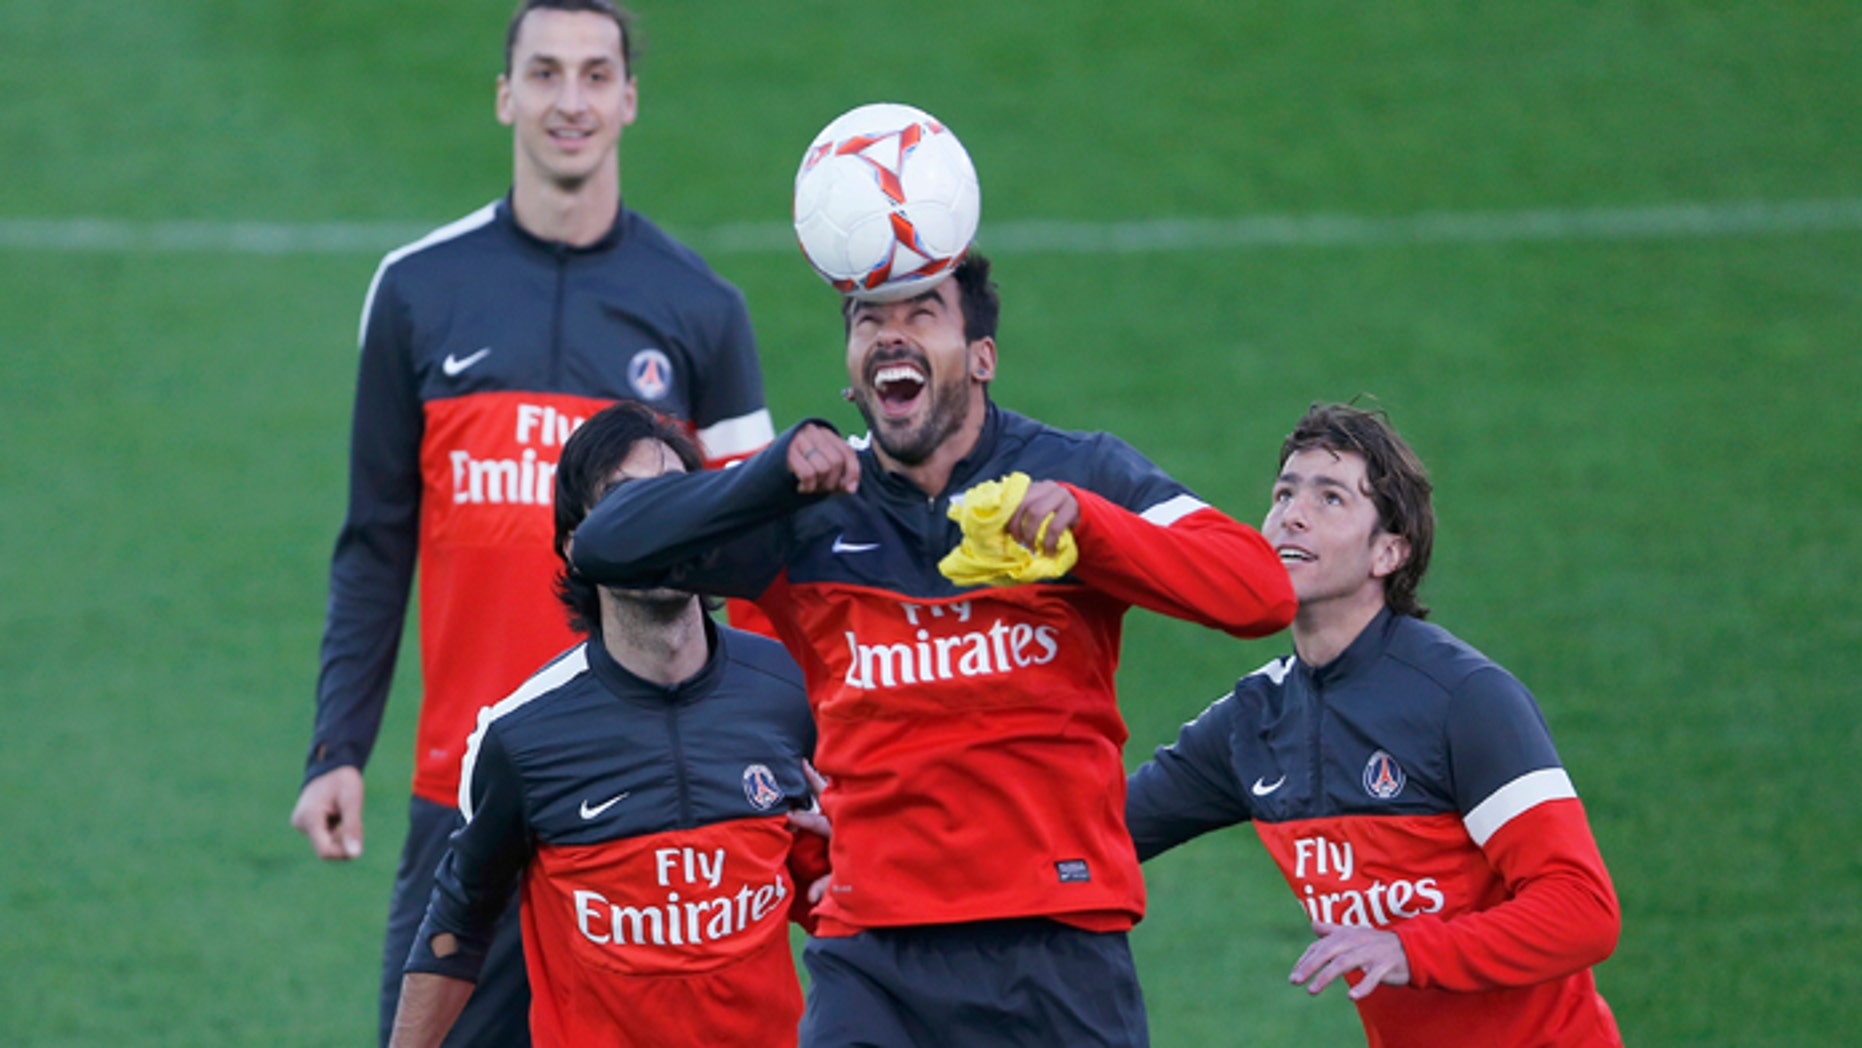 Paris Saint-Germain's Ezequiel Lavezzi heads the ball next as teammates Javier Pastore (L), Zlatan Ibrahimovic (2nd L) and Maxwell (R) watch during a training session.